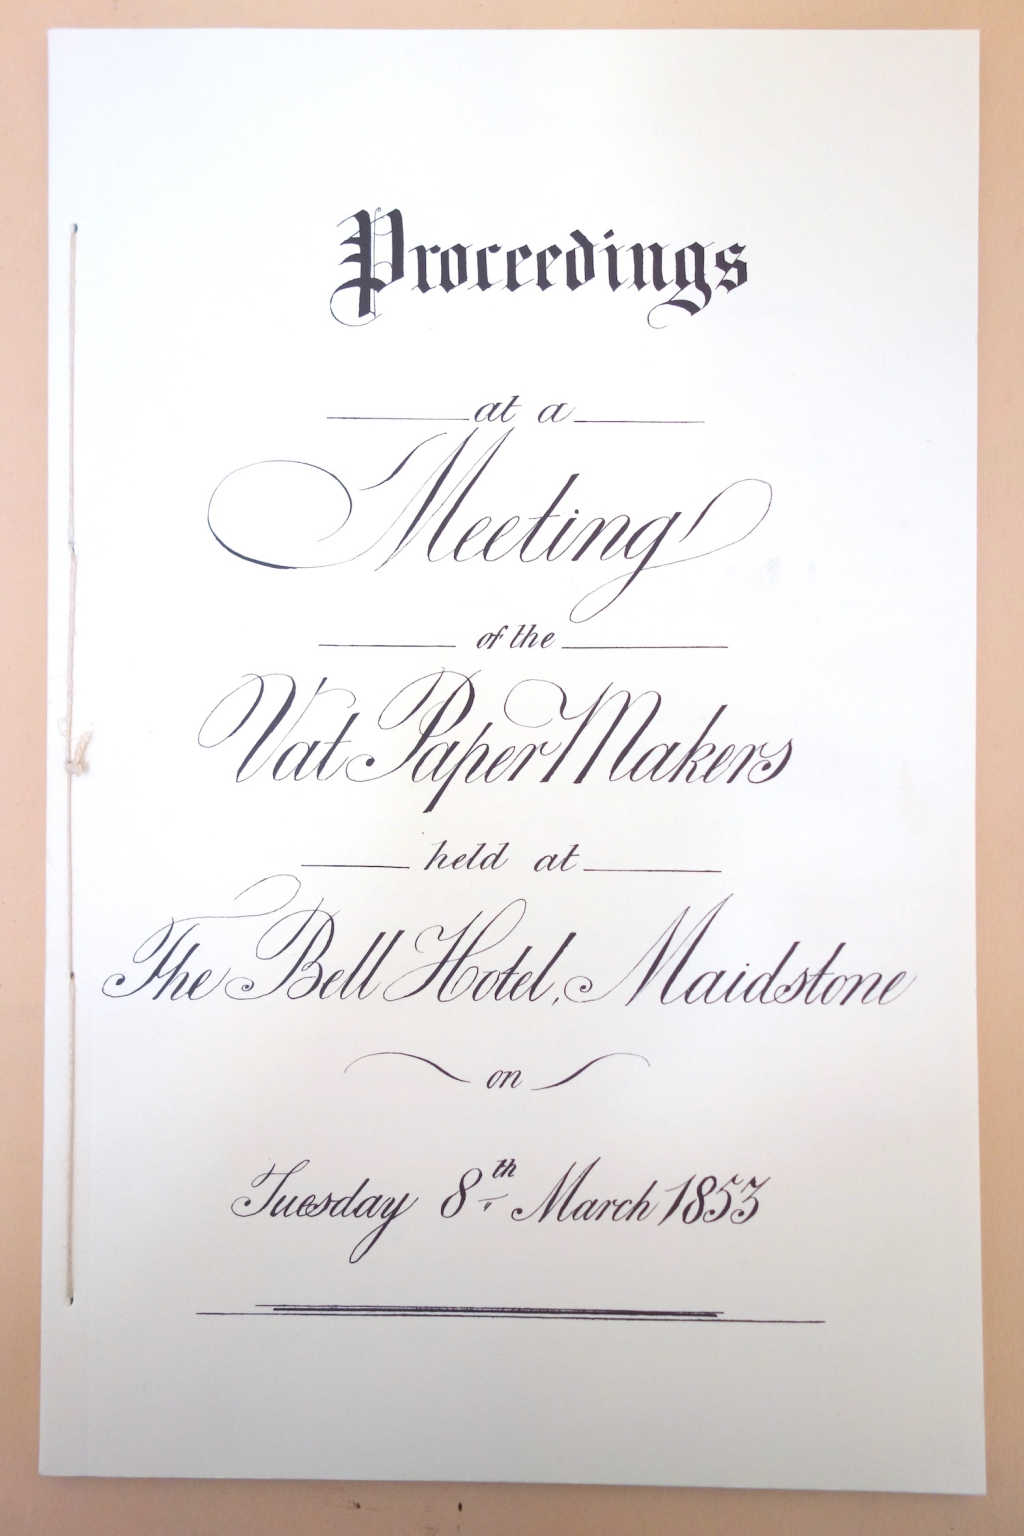 Proceedings at a Meeting of the Vat PaperMakers....